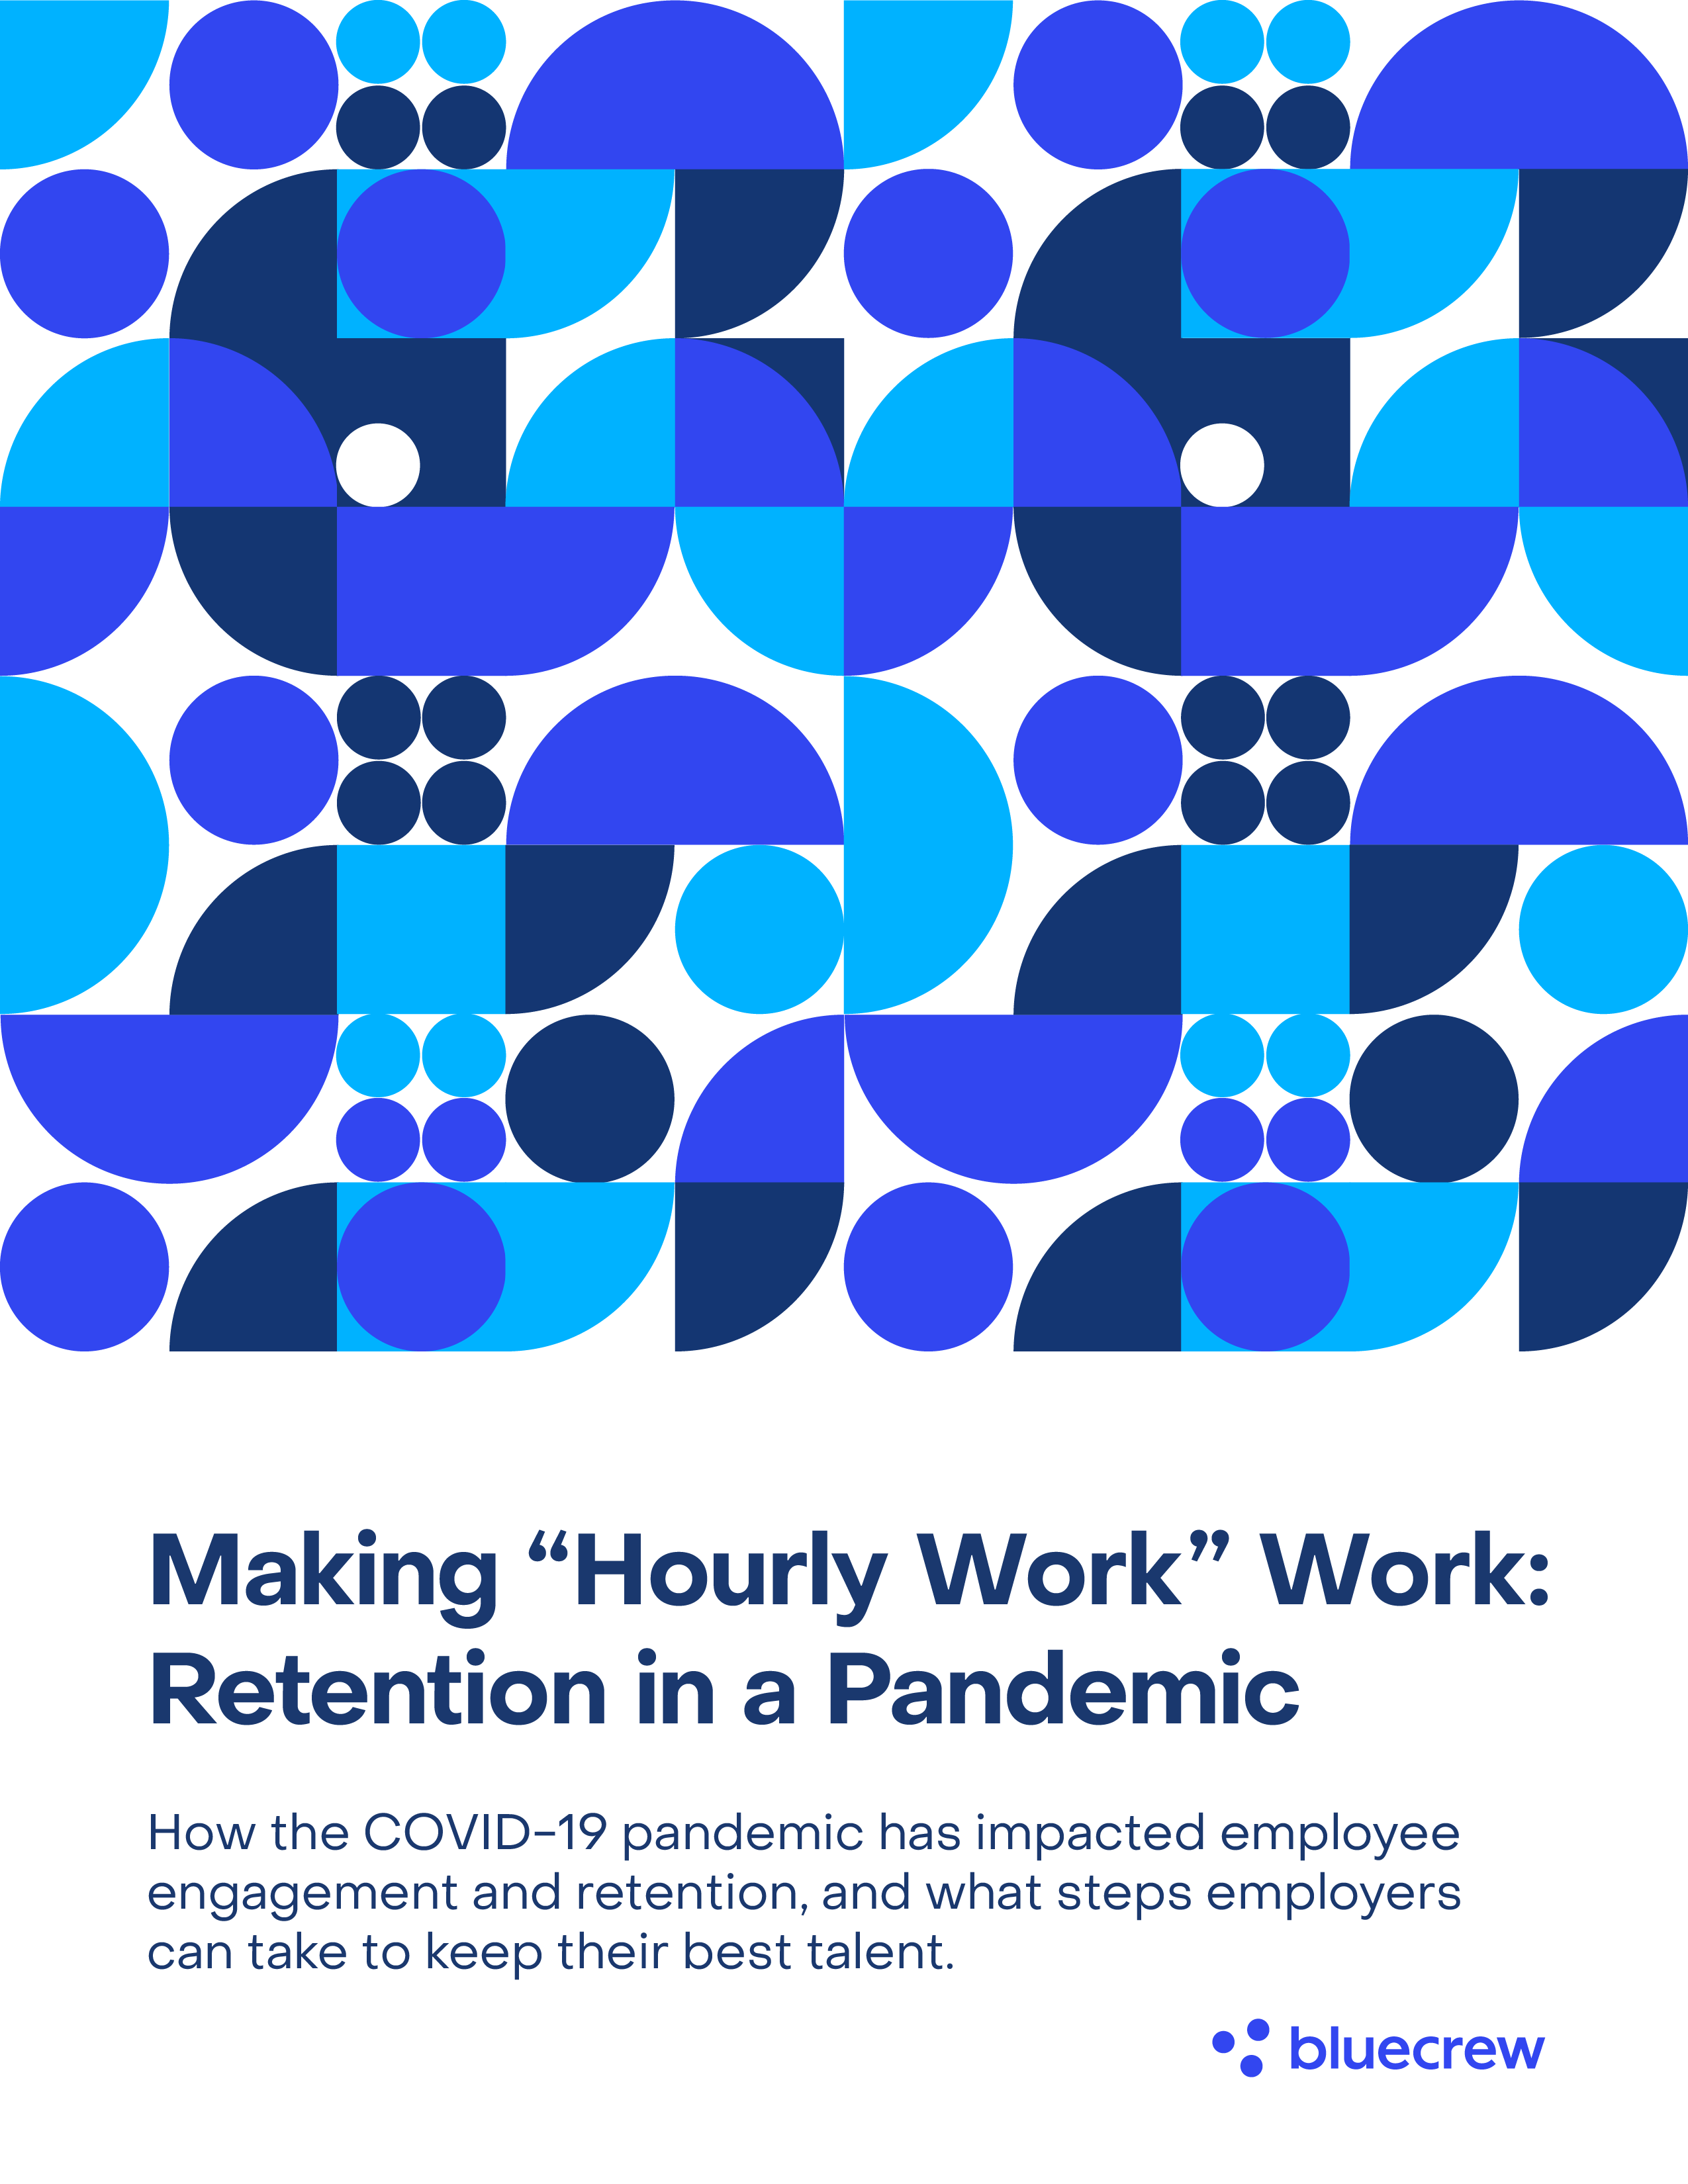 How your COVID-19 response is impacting hourly worker retention and engagement